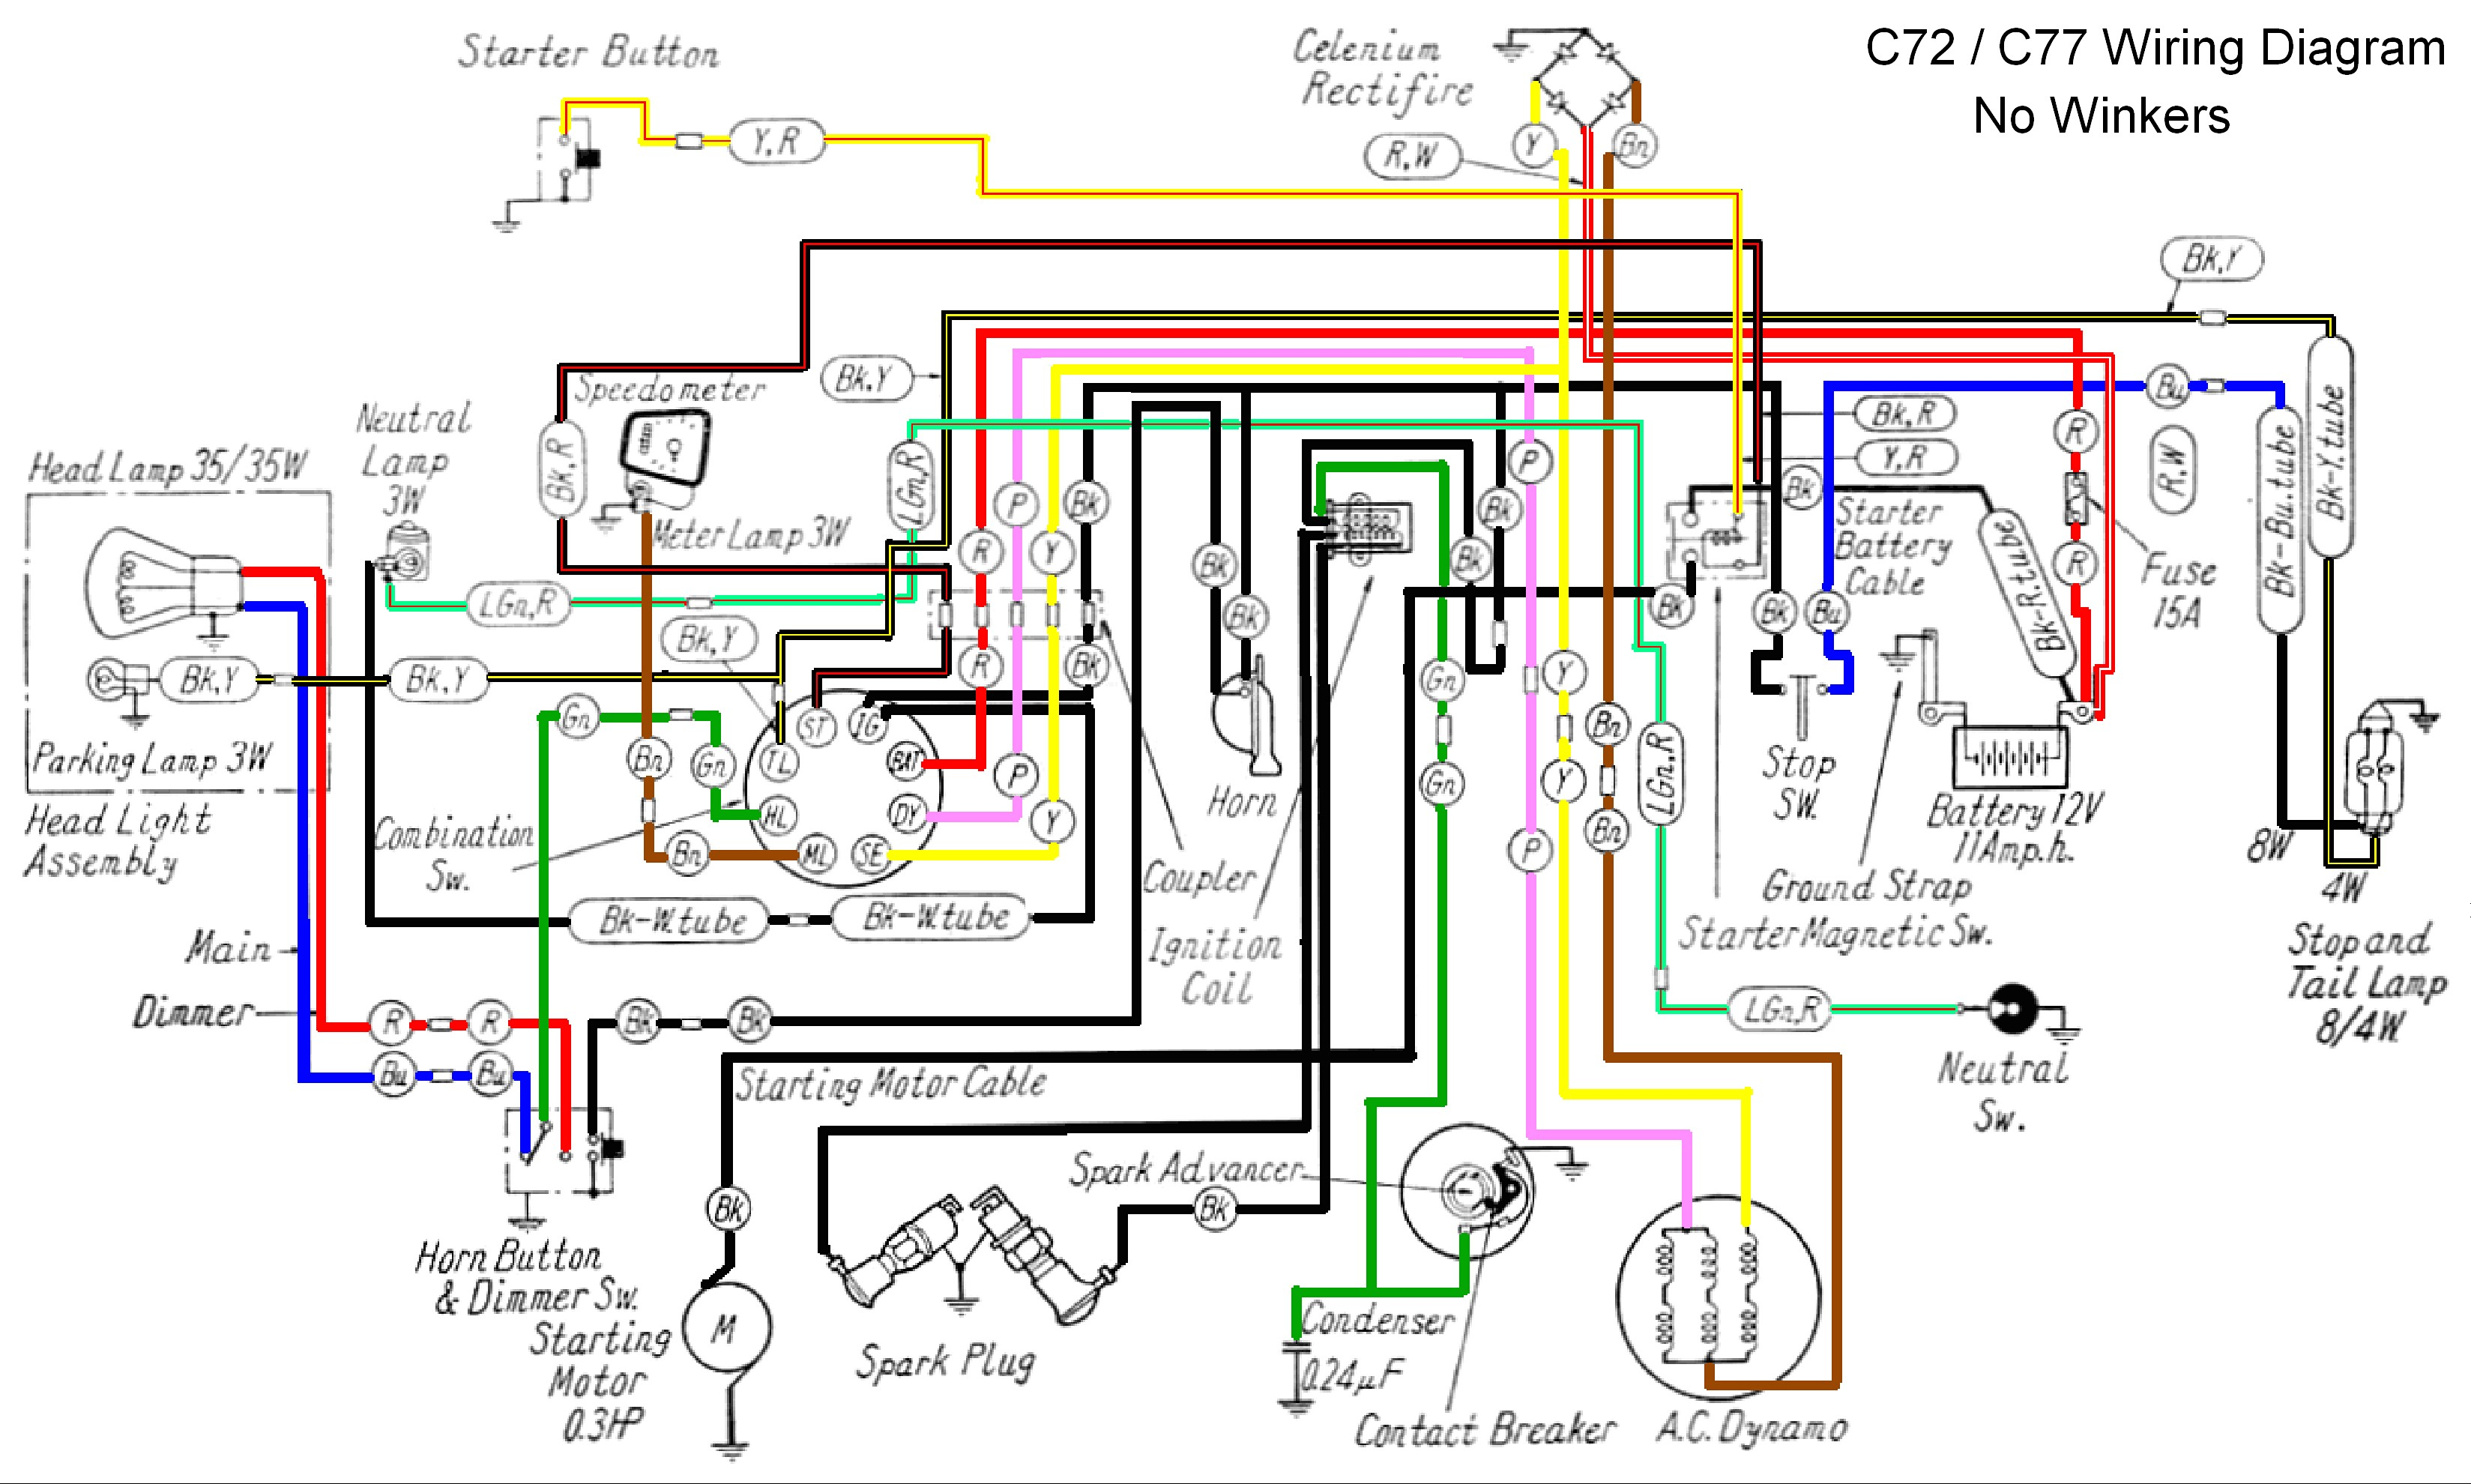 small resolution of 883 2004 wiring diagram wiring library gmc fuse box diagrams harley wiring diagram for dummies detailed